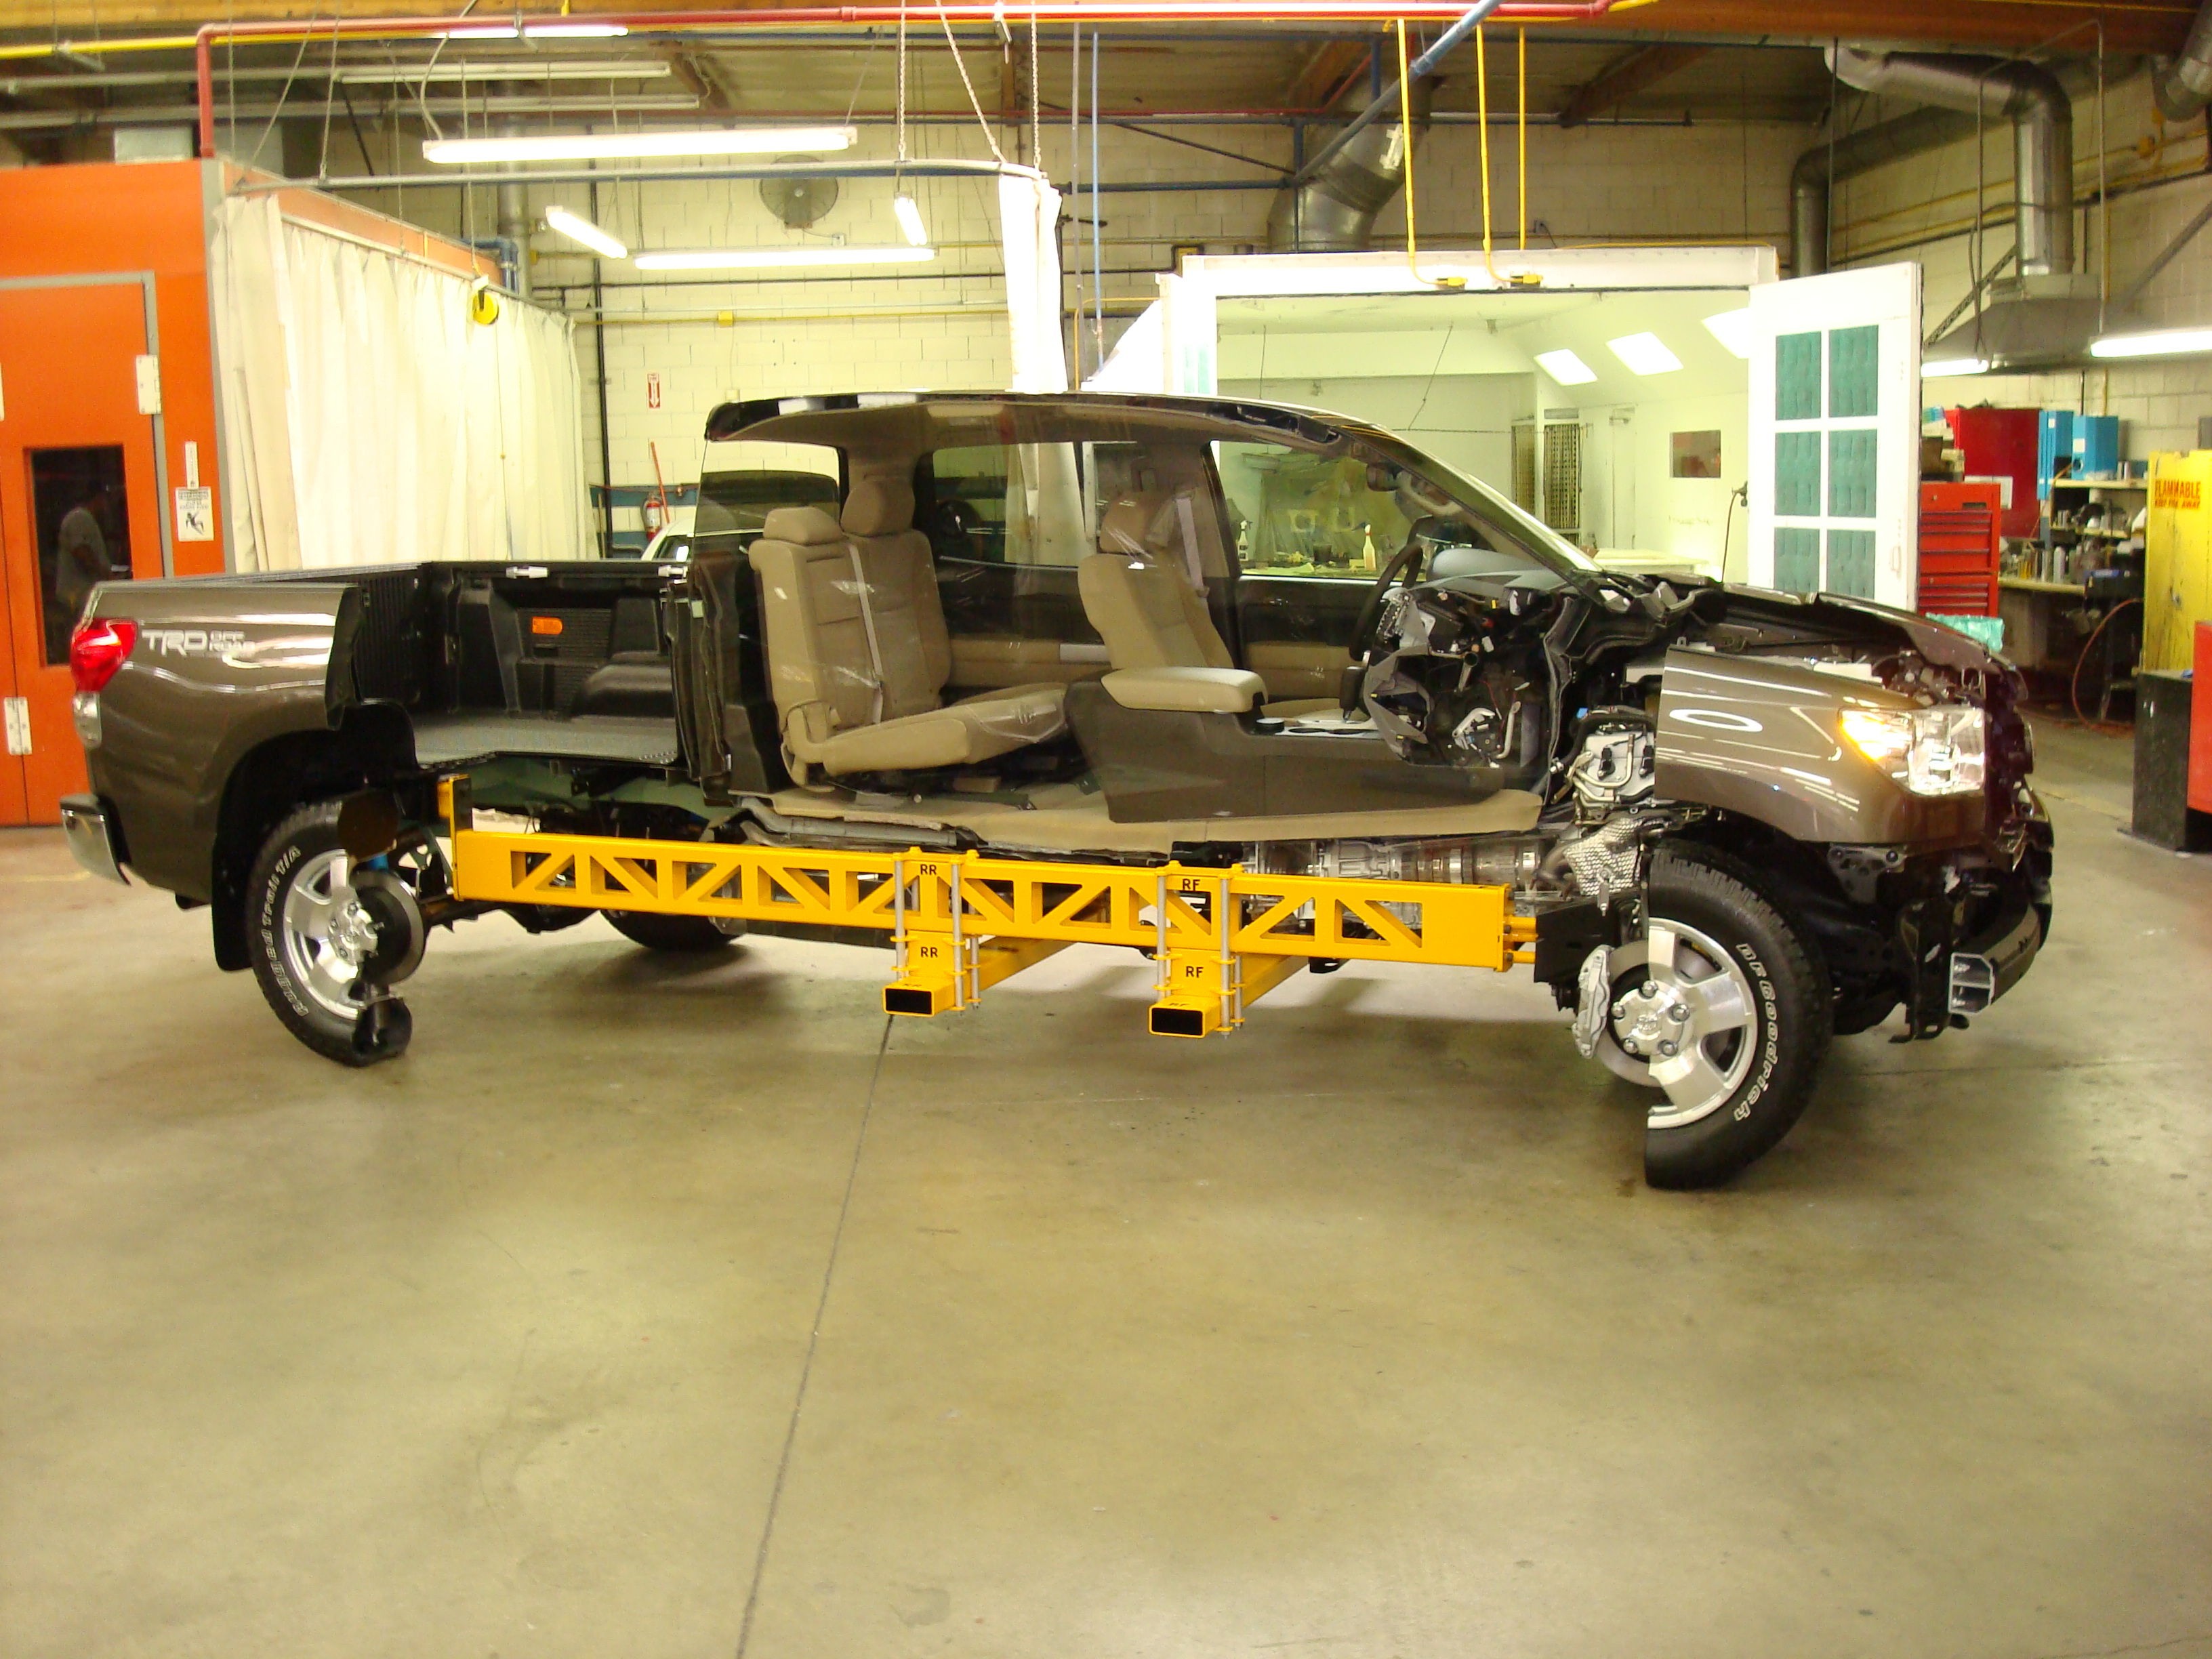 Toyota Tundra full size Truck Cutaway. Designed and executed by Eric Allard